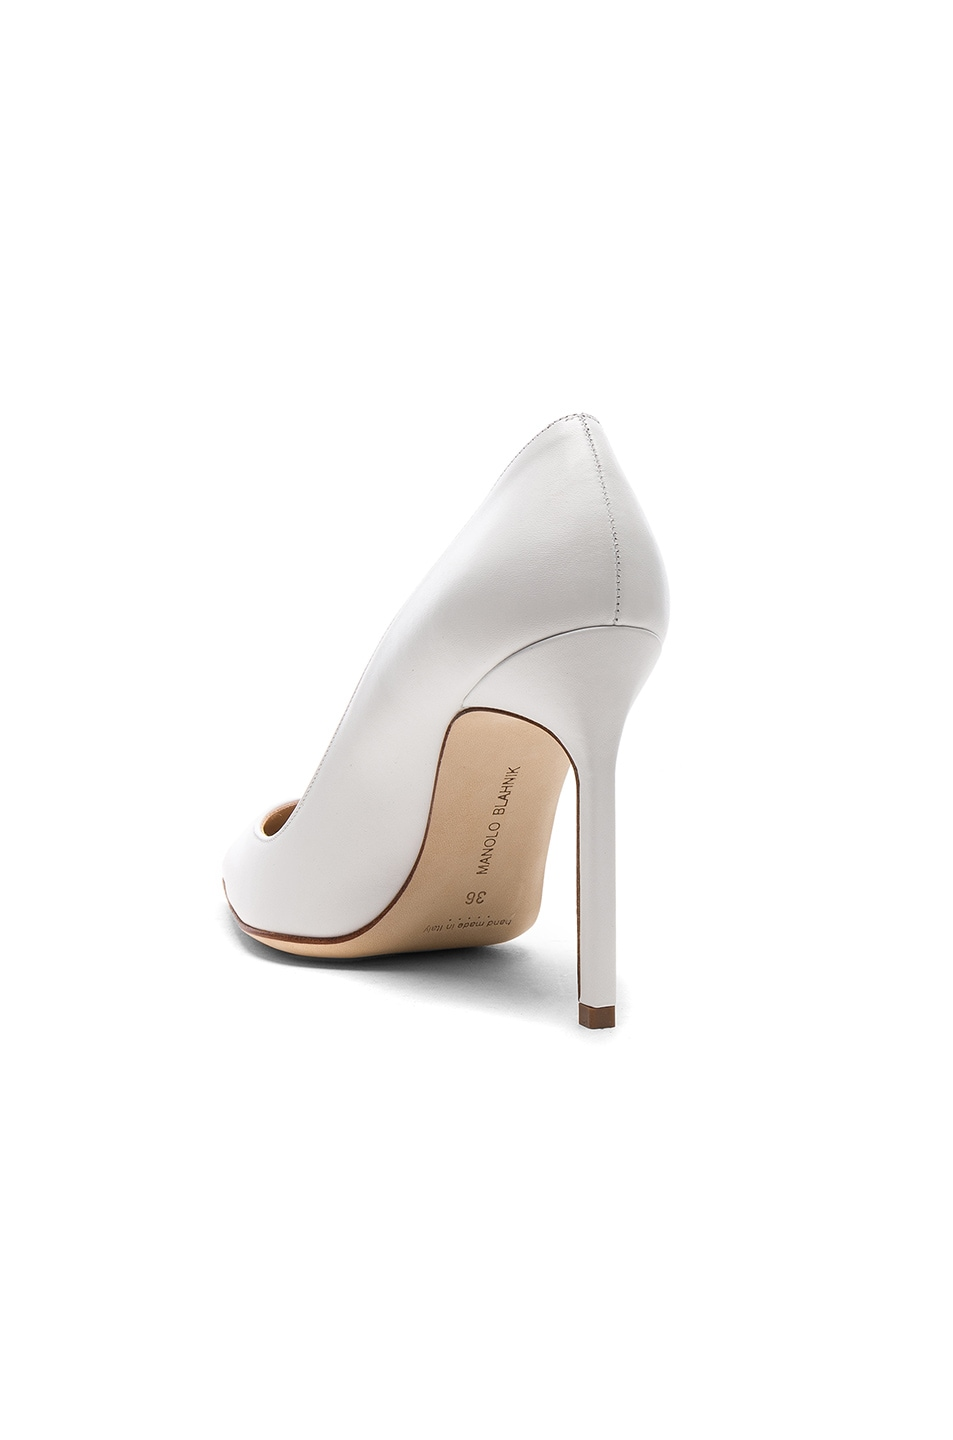 Image 3 of Manolo Blahnik Leather BB 105 Heels in White Leather